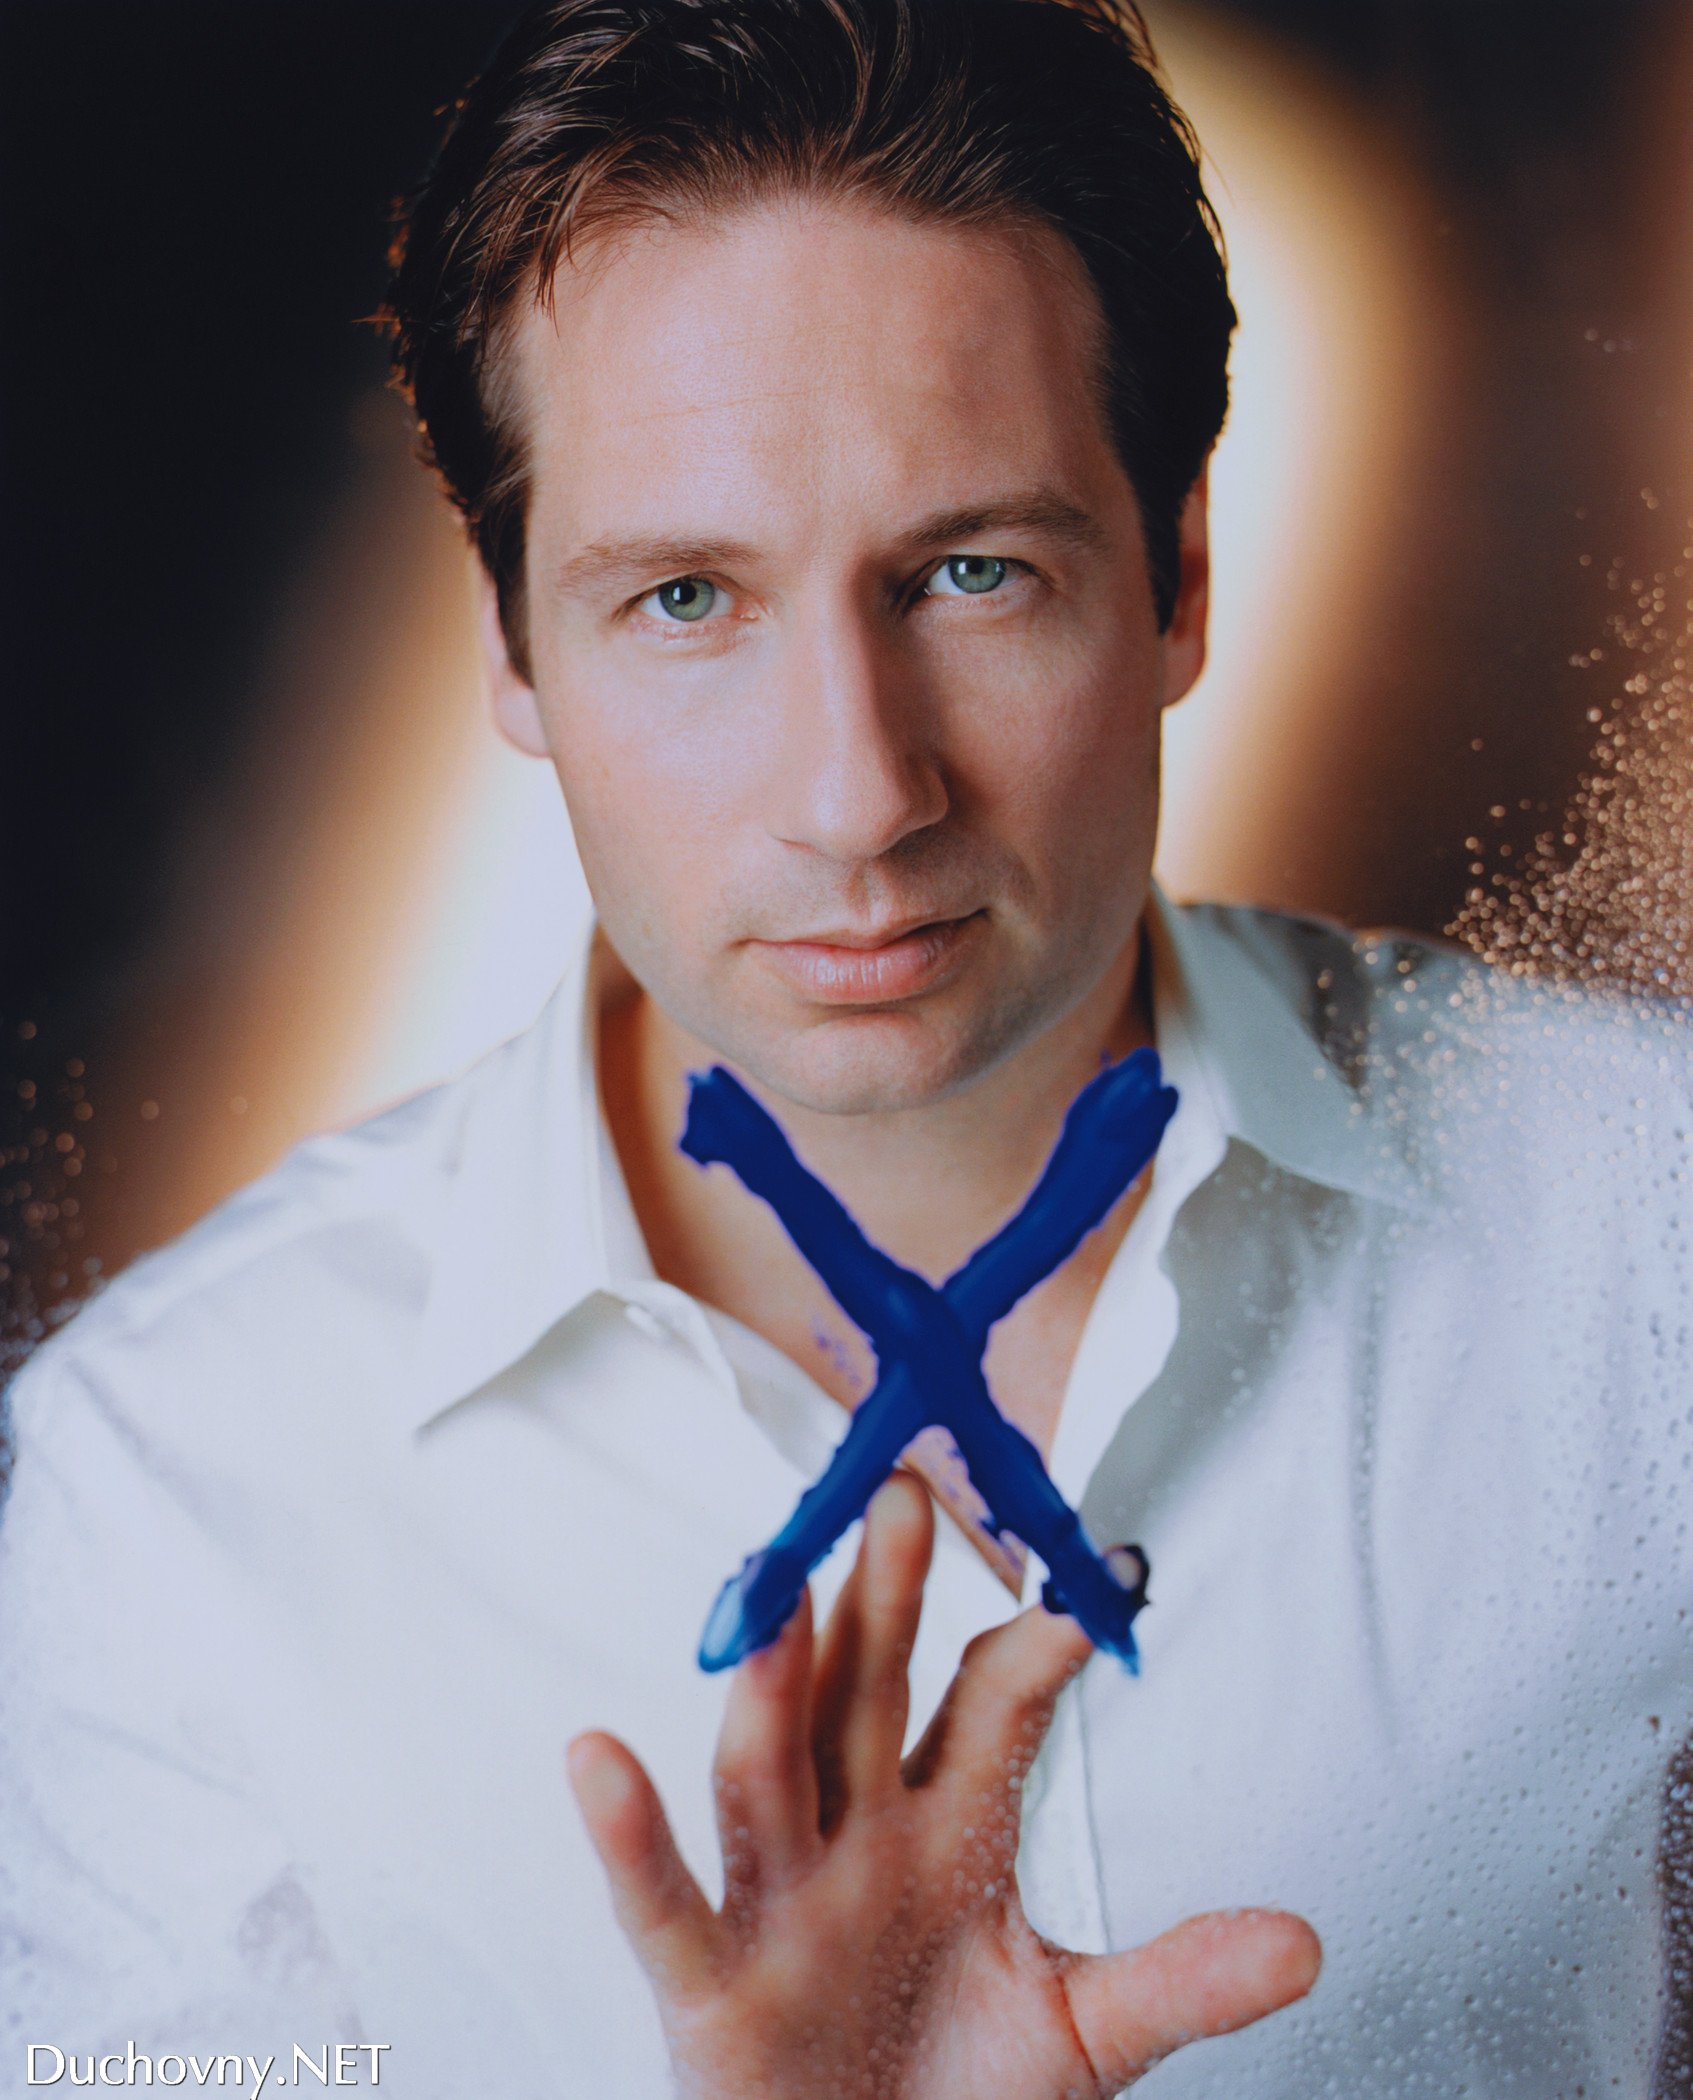 David Duchovny images David Duchovny HD wallpaper and background 1693x2100